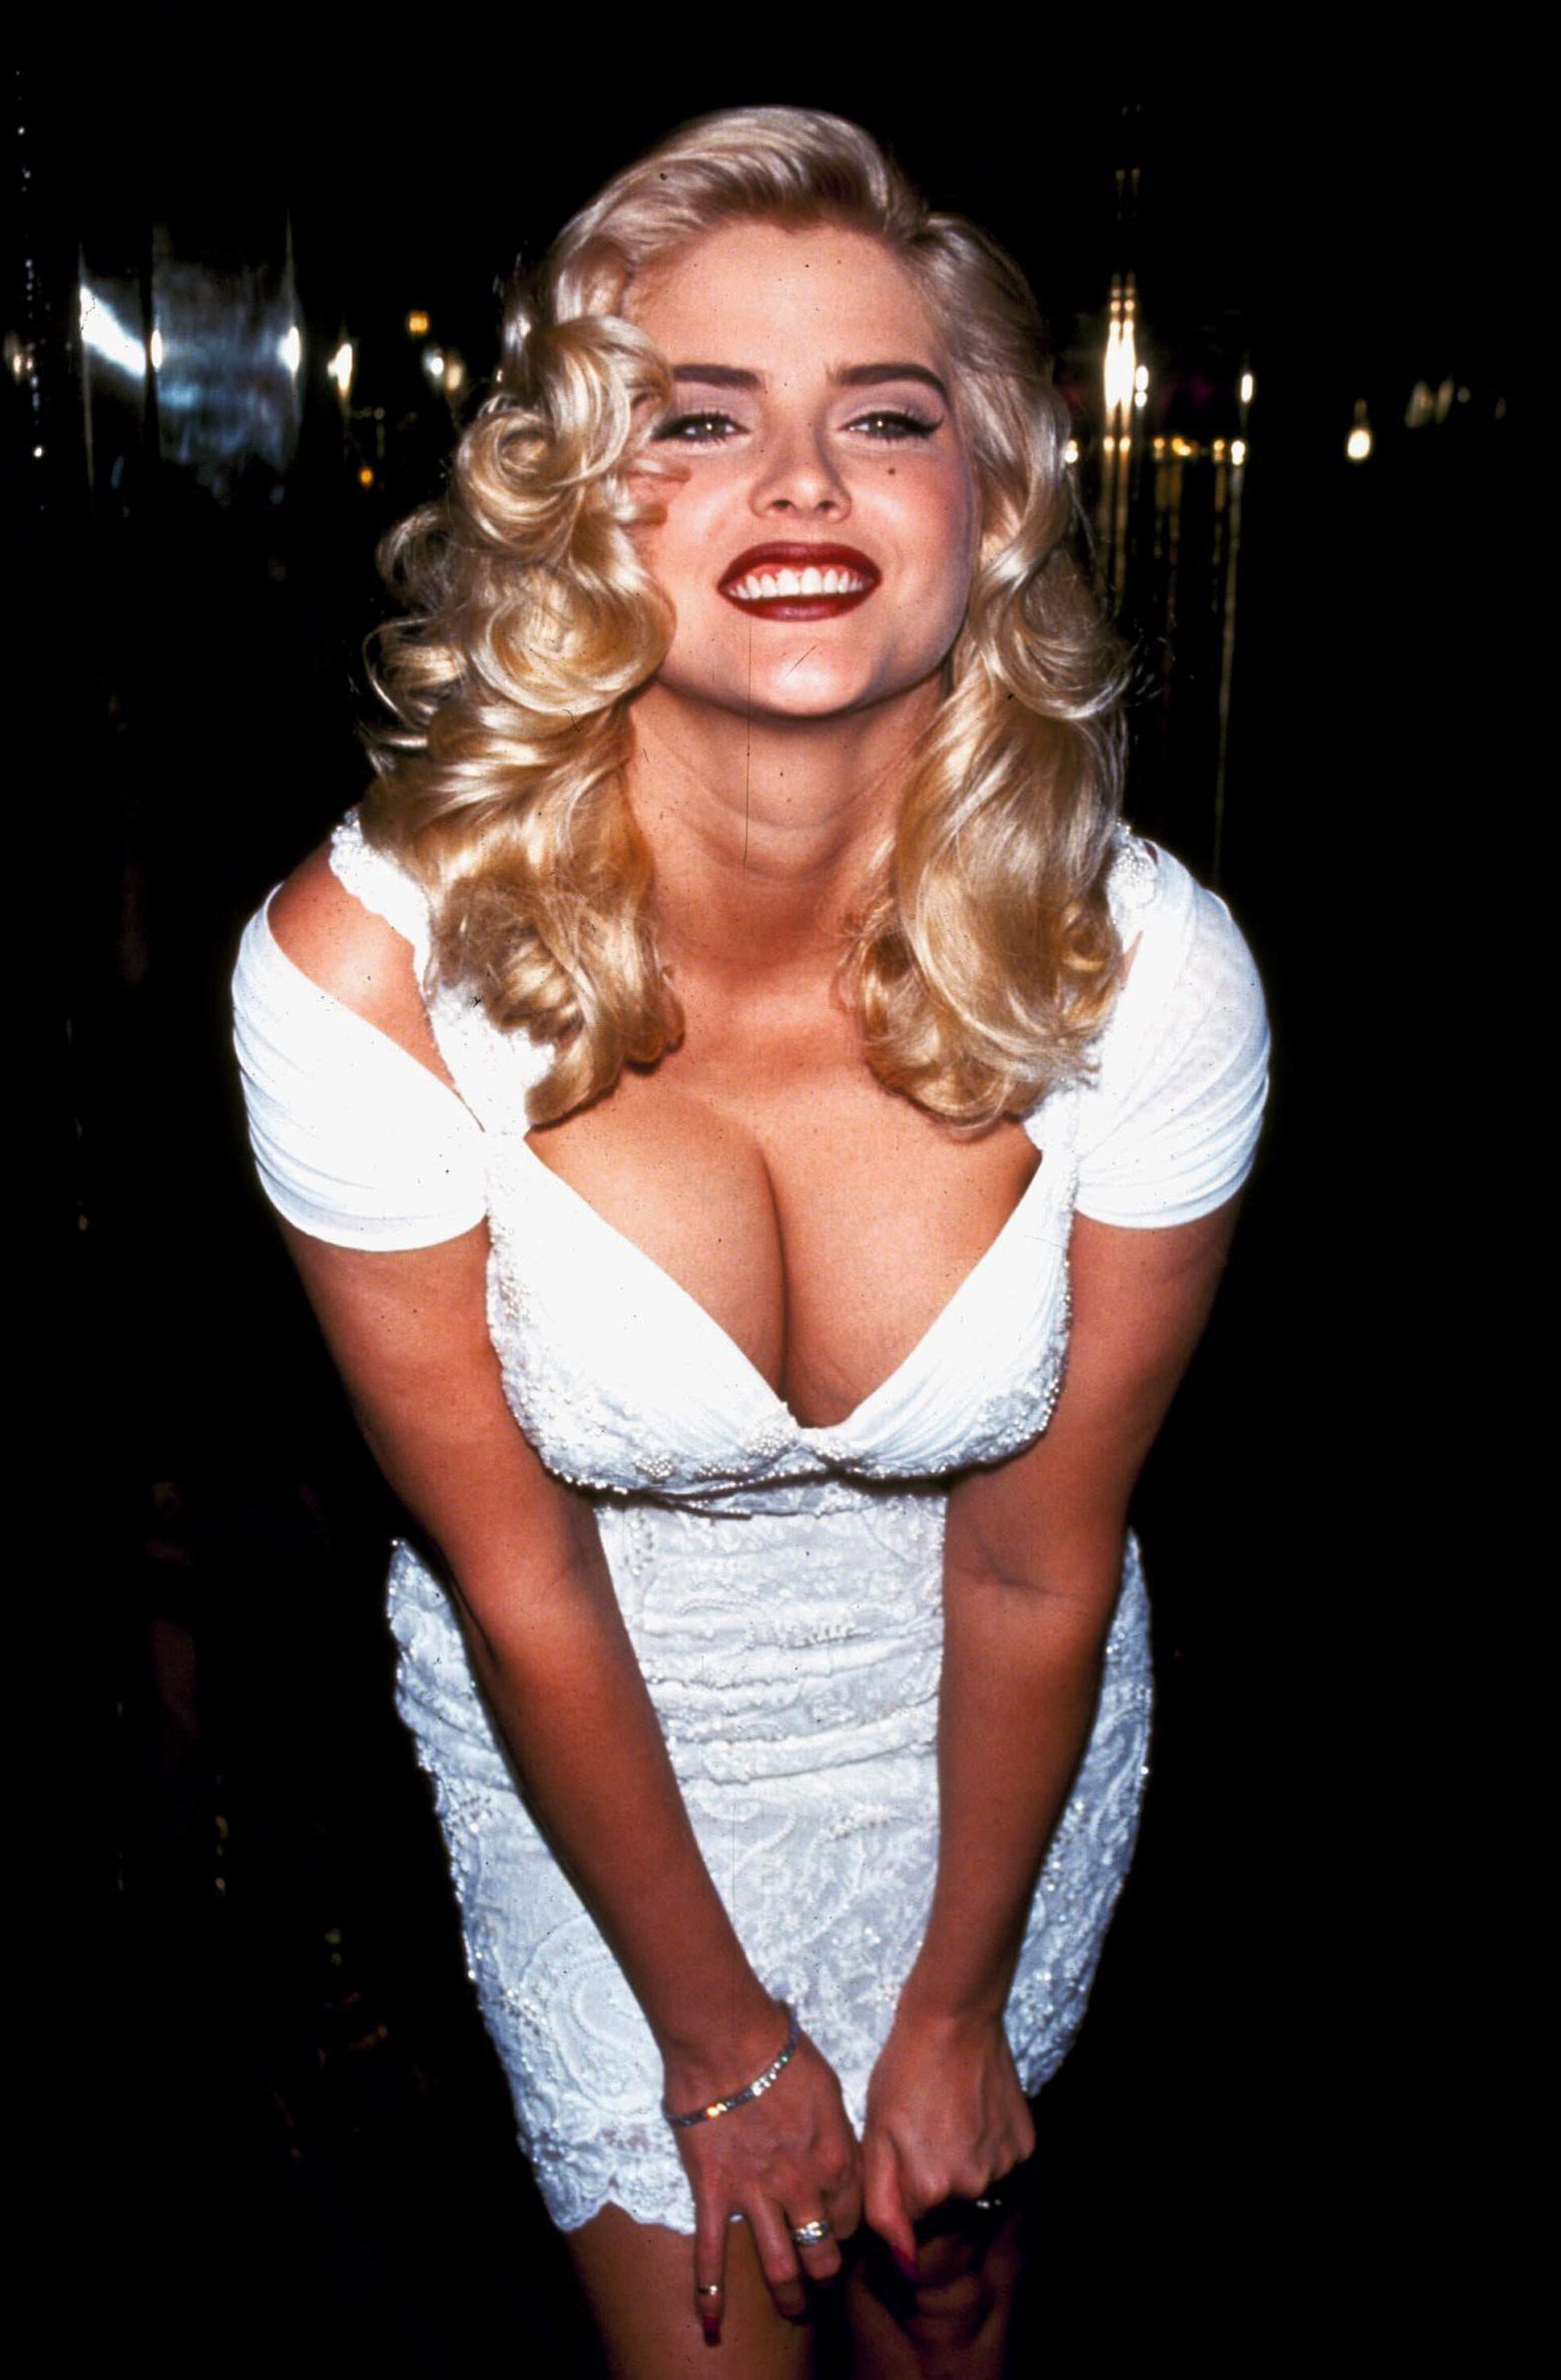 Video sexe de anna nicole smith